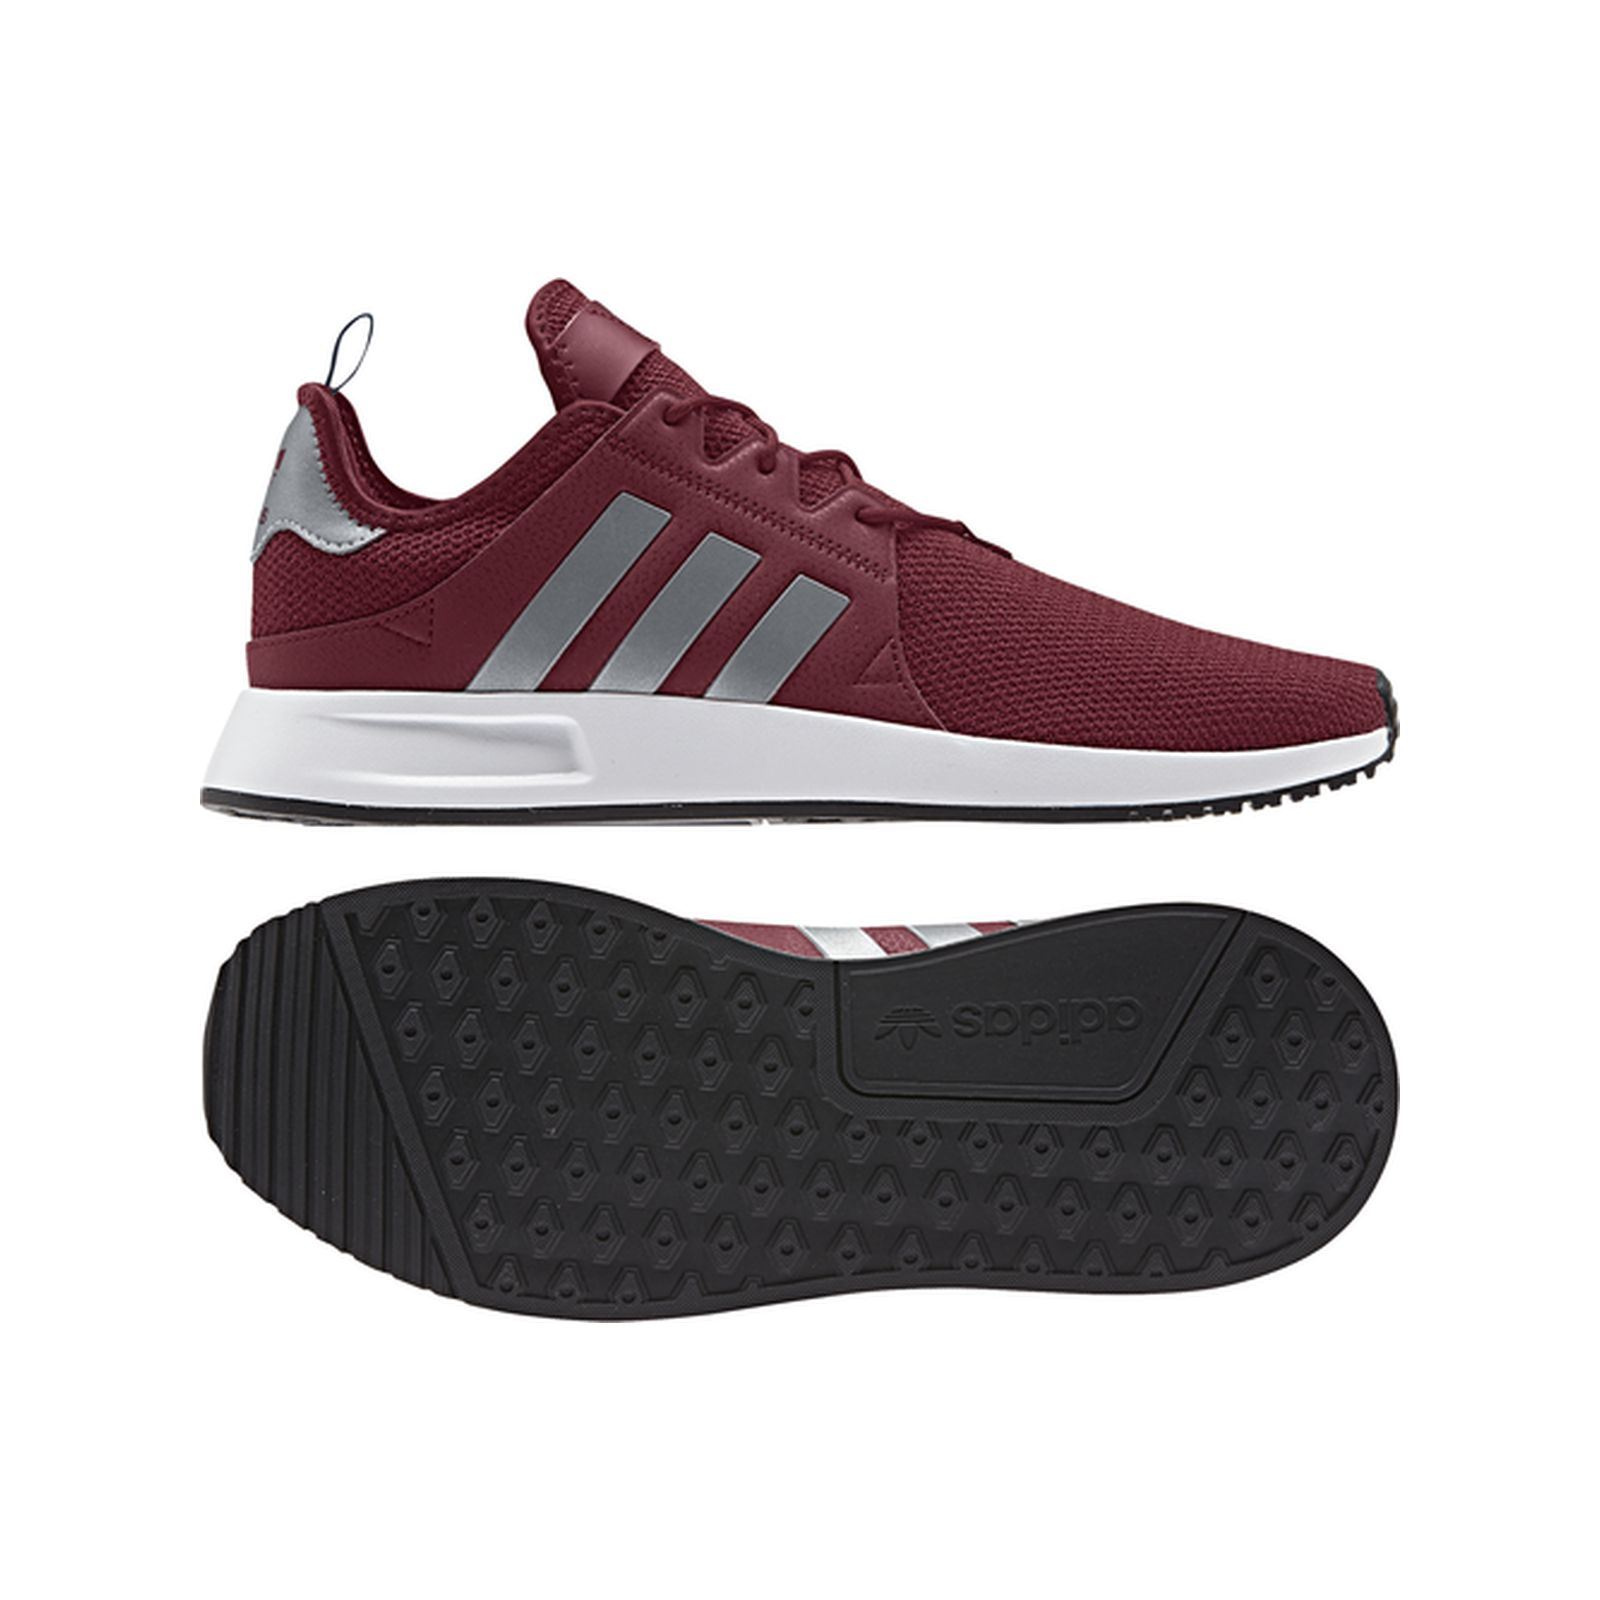 4b6be82aca68a adidas Originals X-PLR - Zapatillas - burdeos